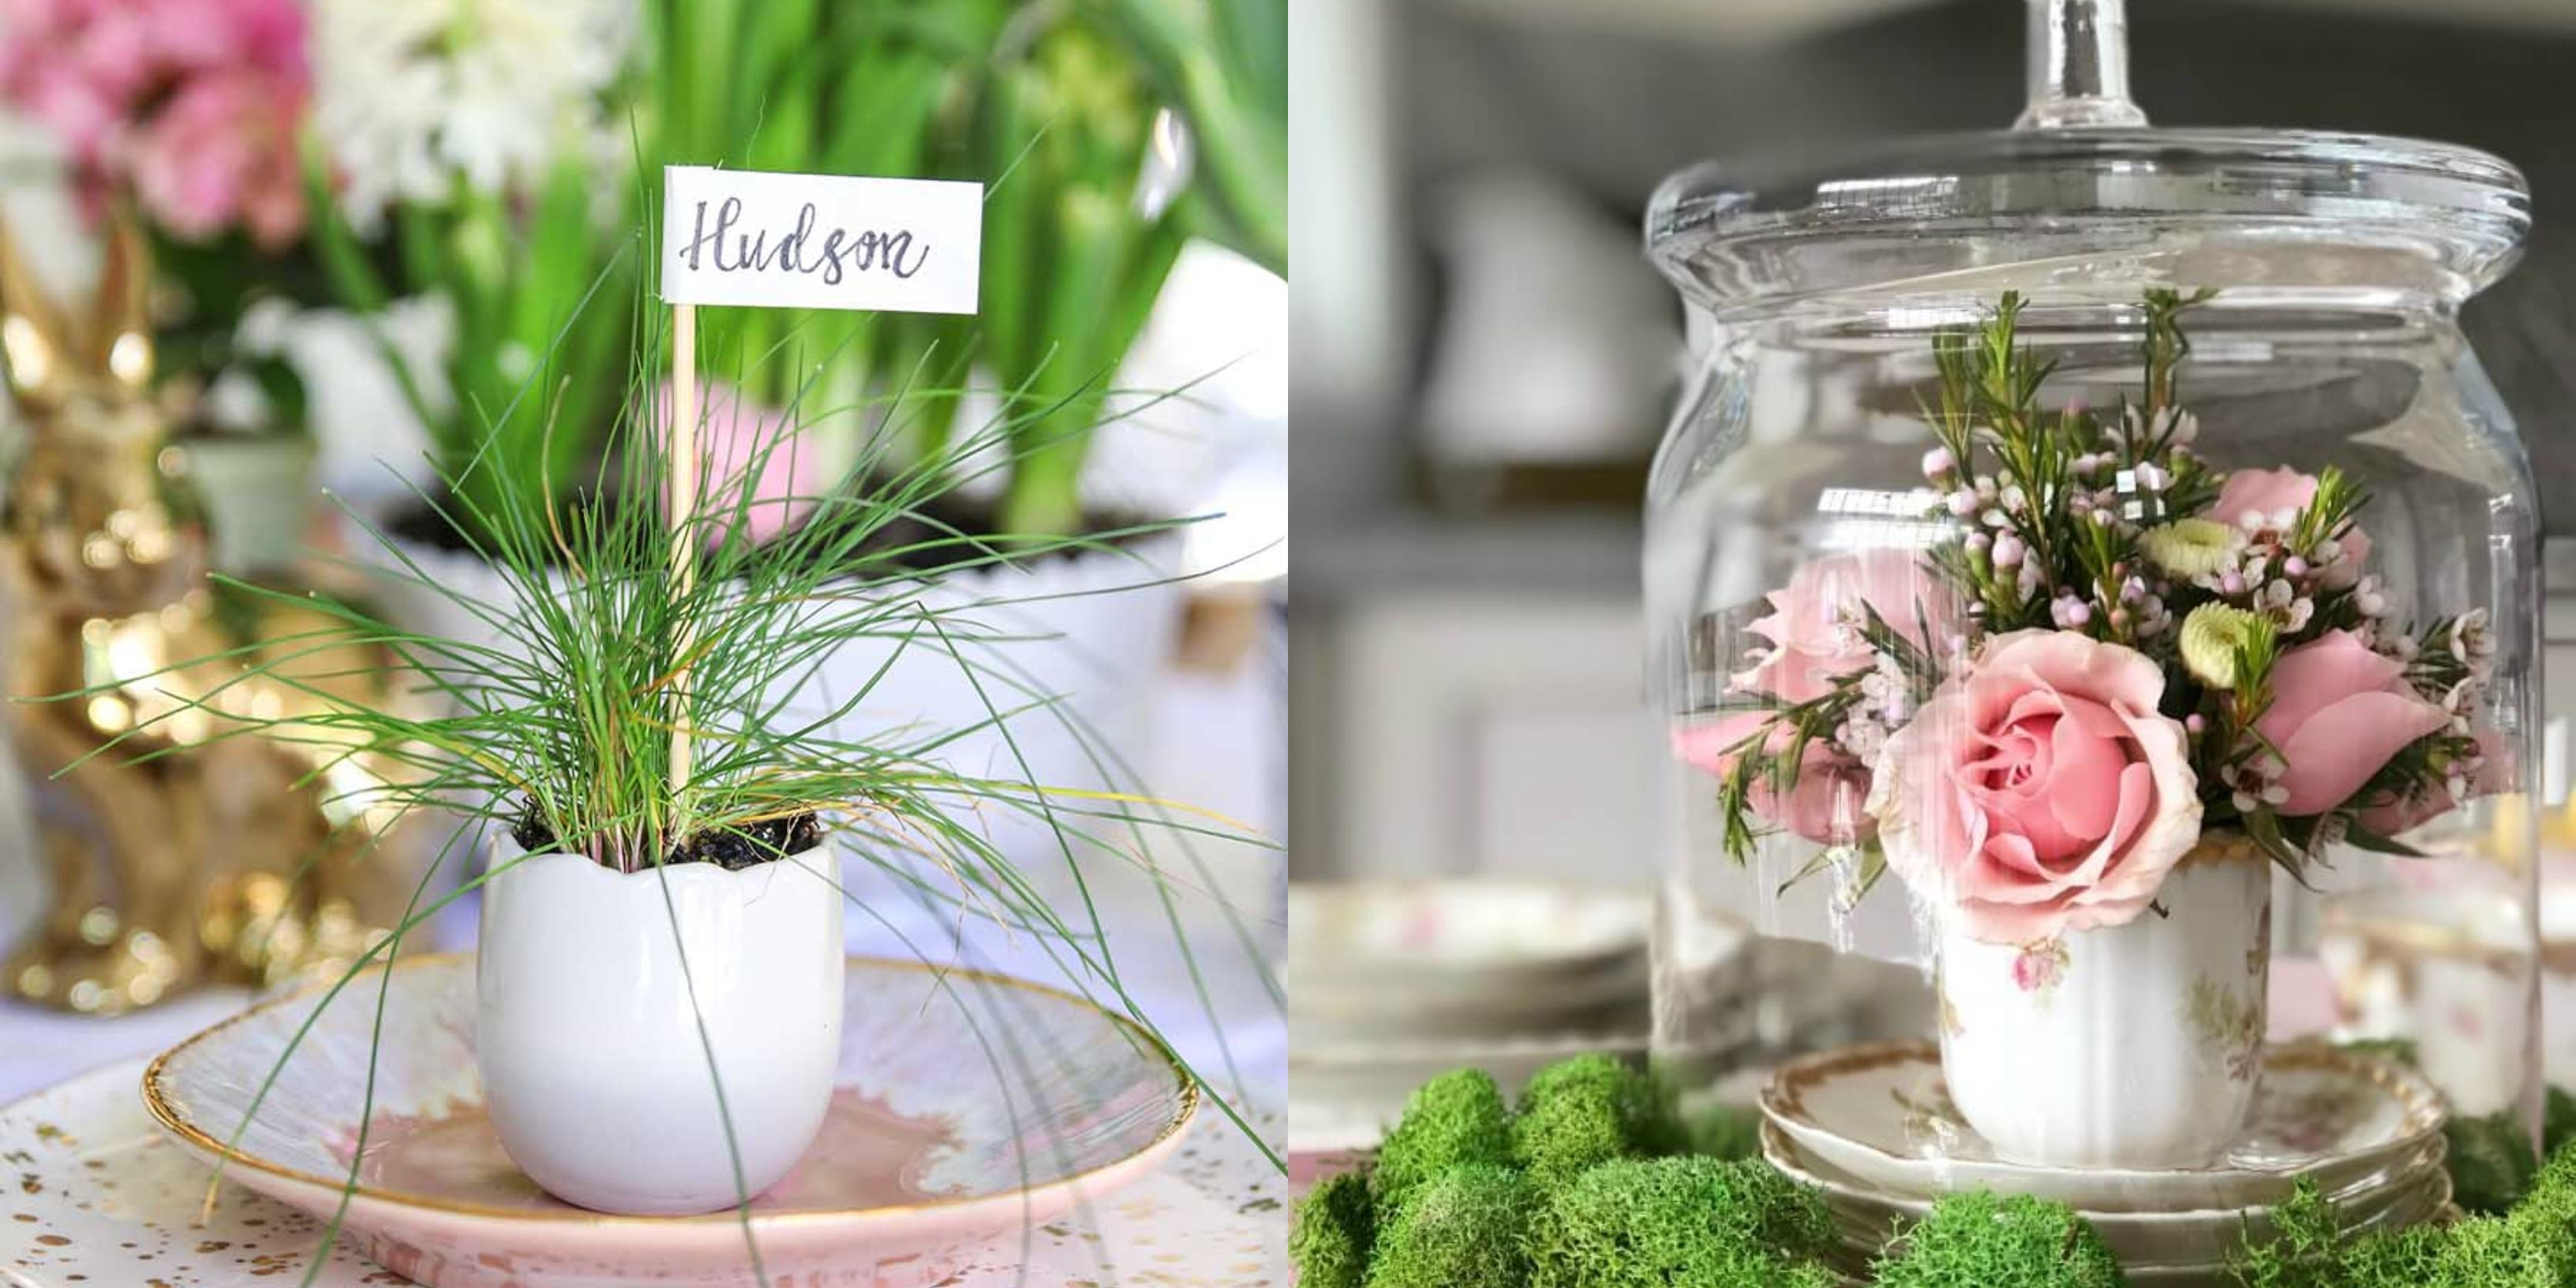 54 One-of-a-Kind Easter Table Decorations and Centerpieces